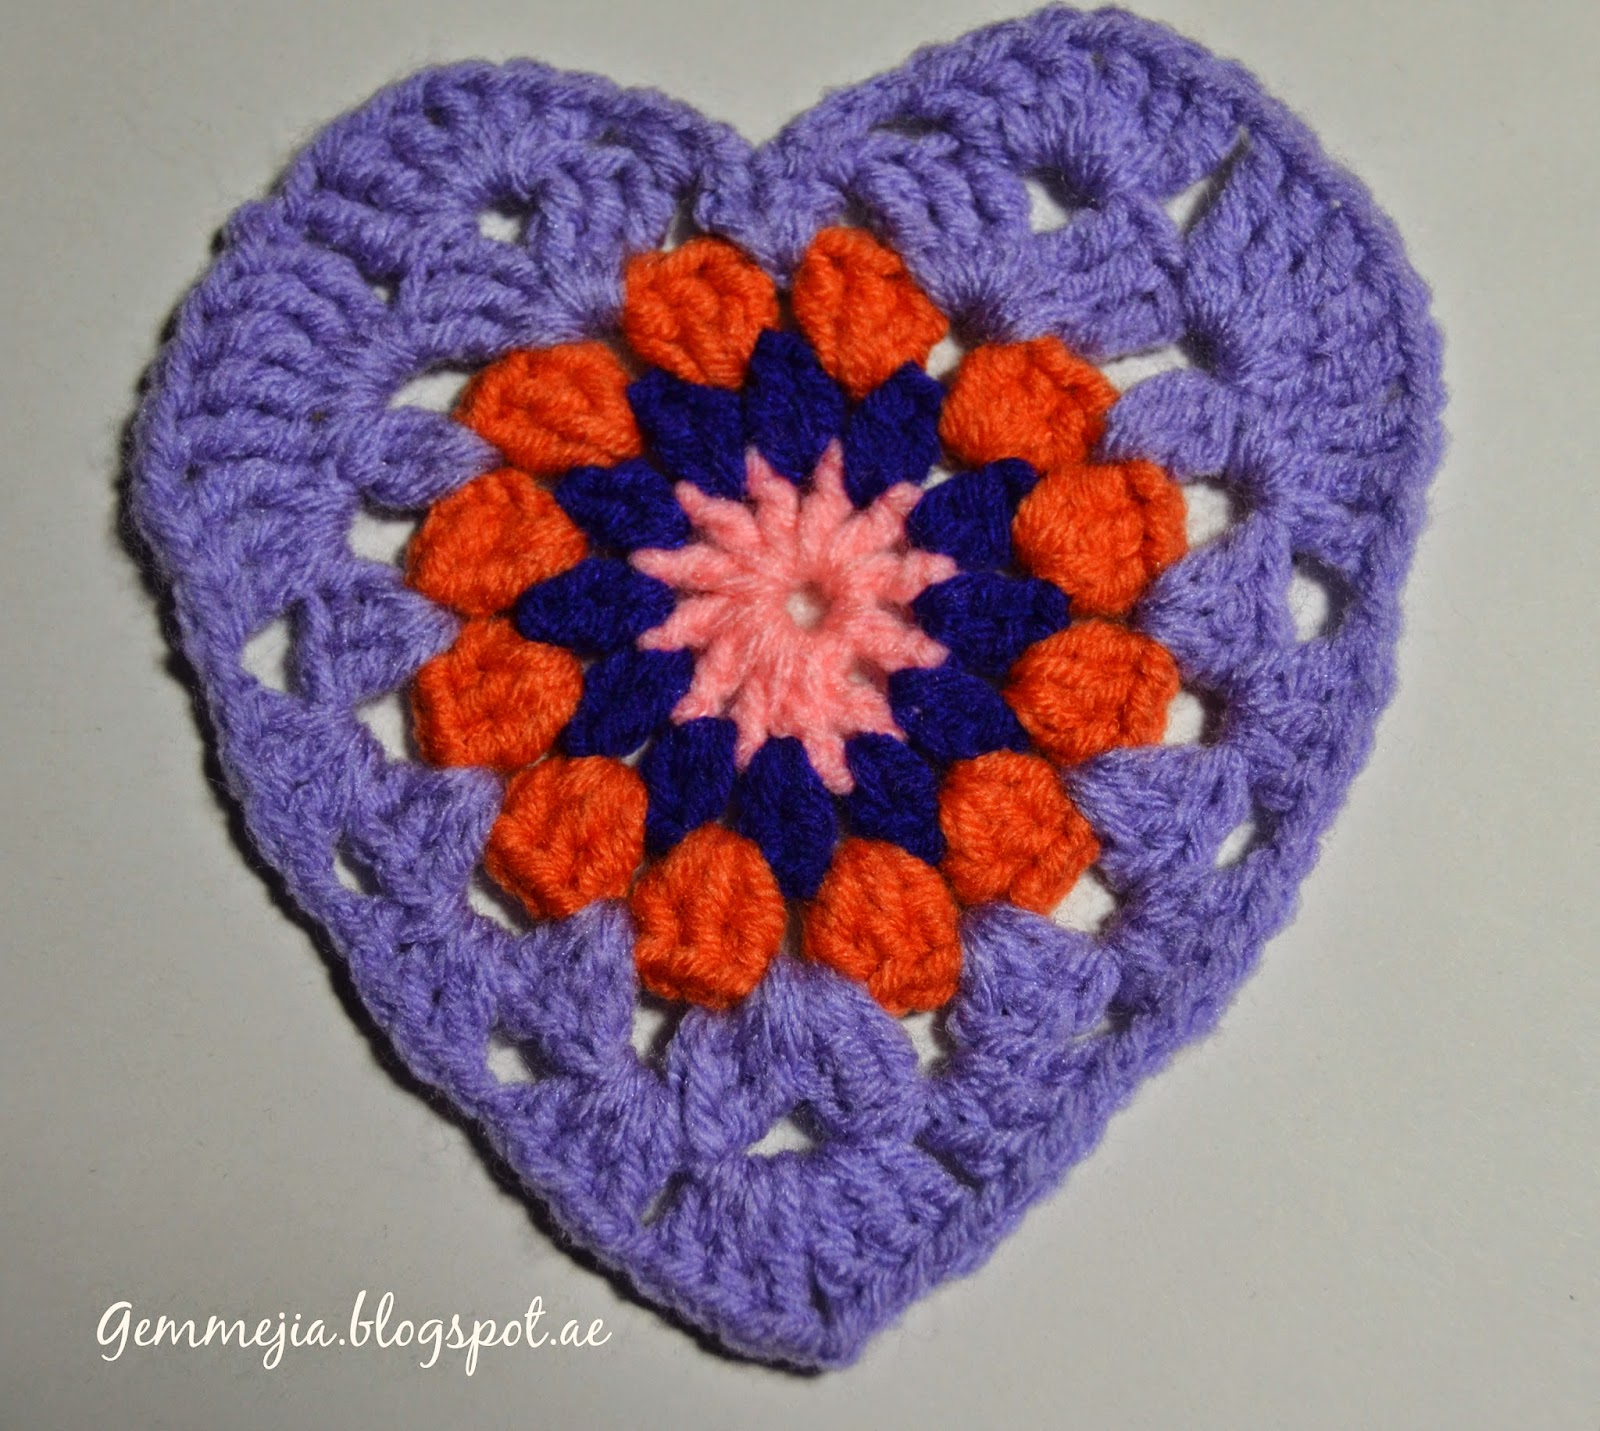 Crochet, hearts, valentines day, hookers